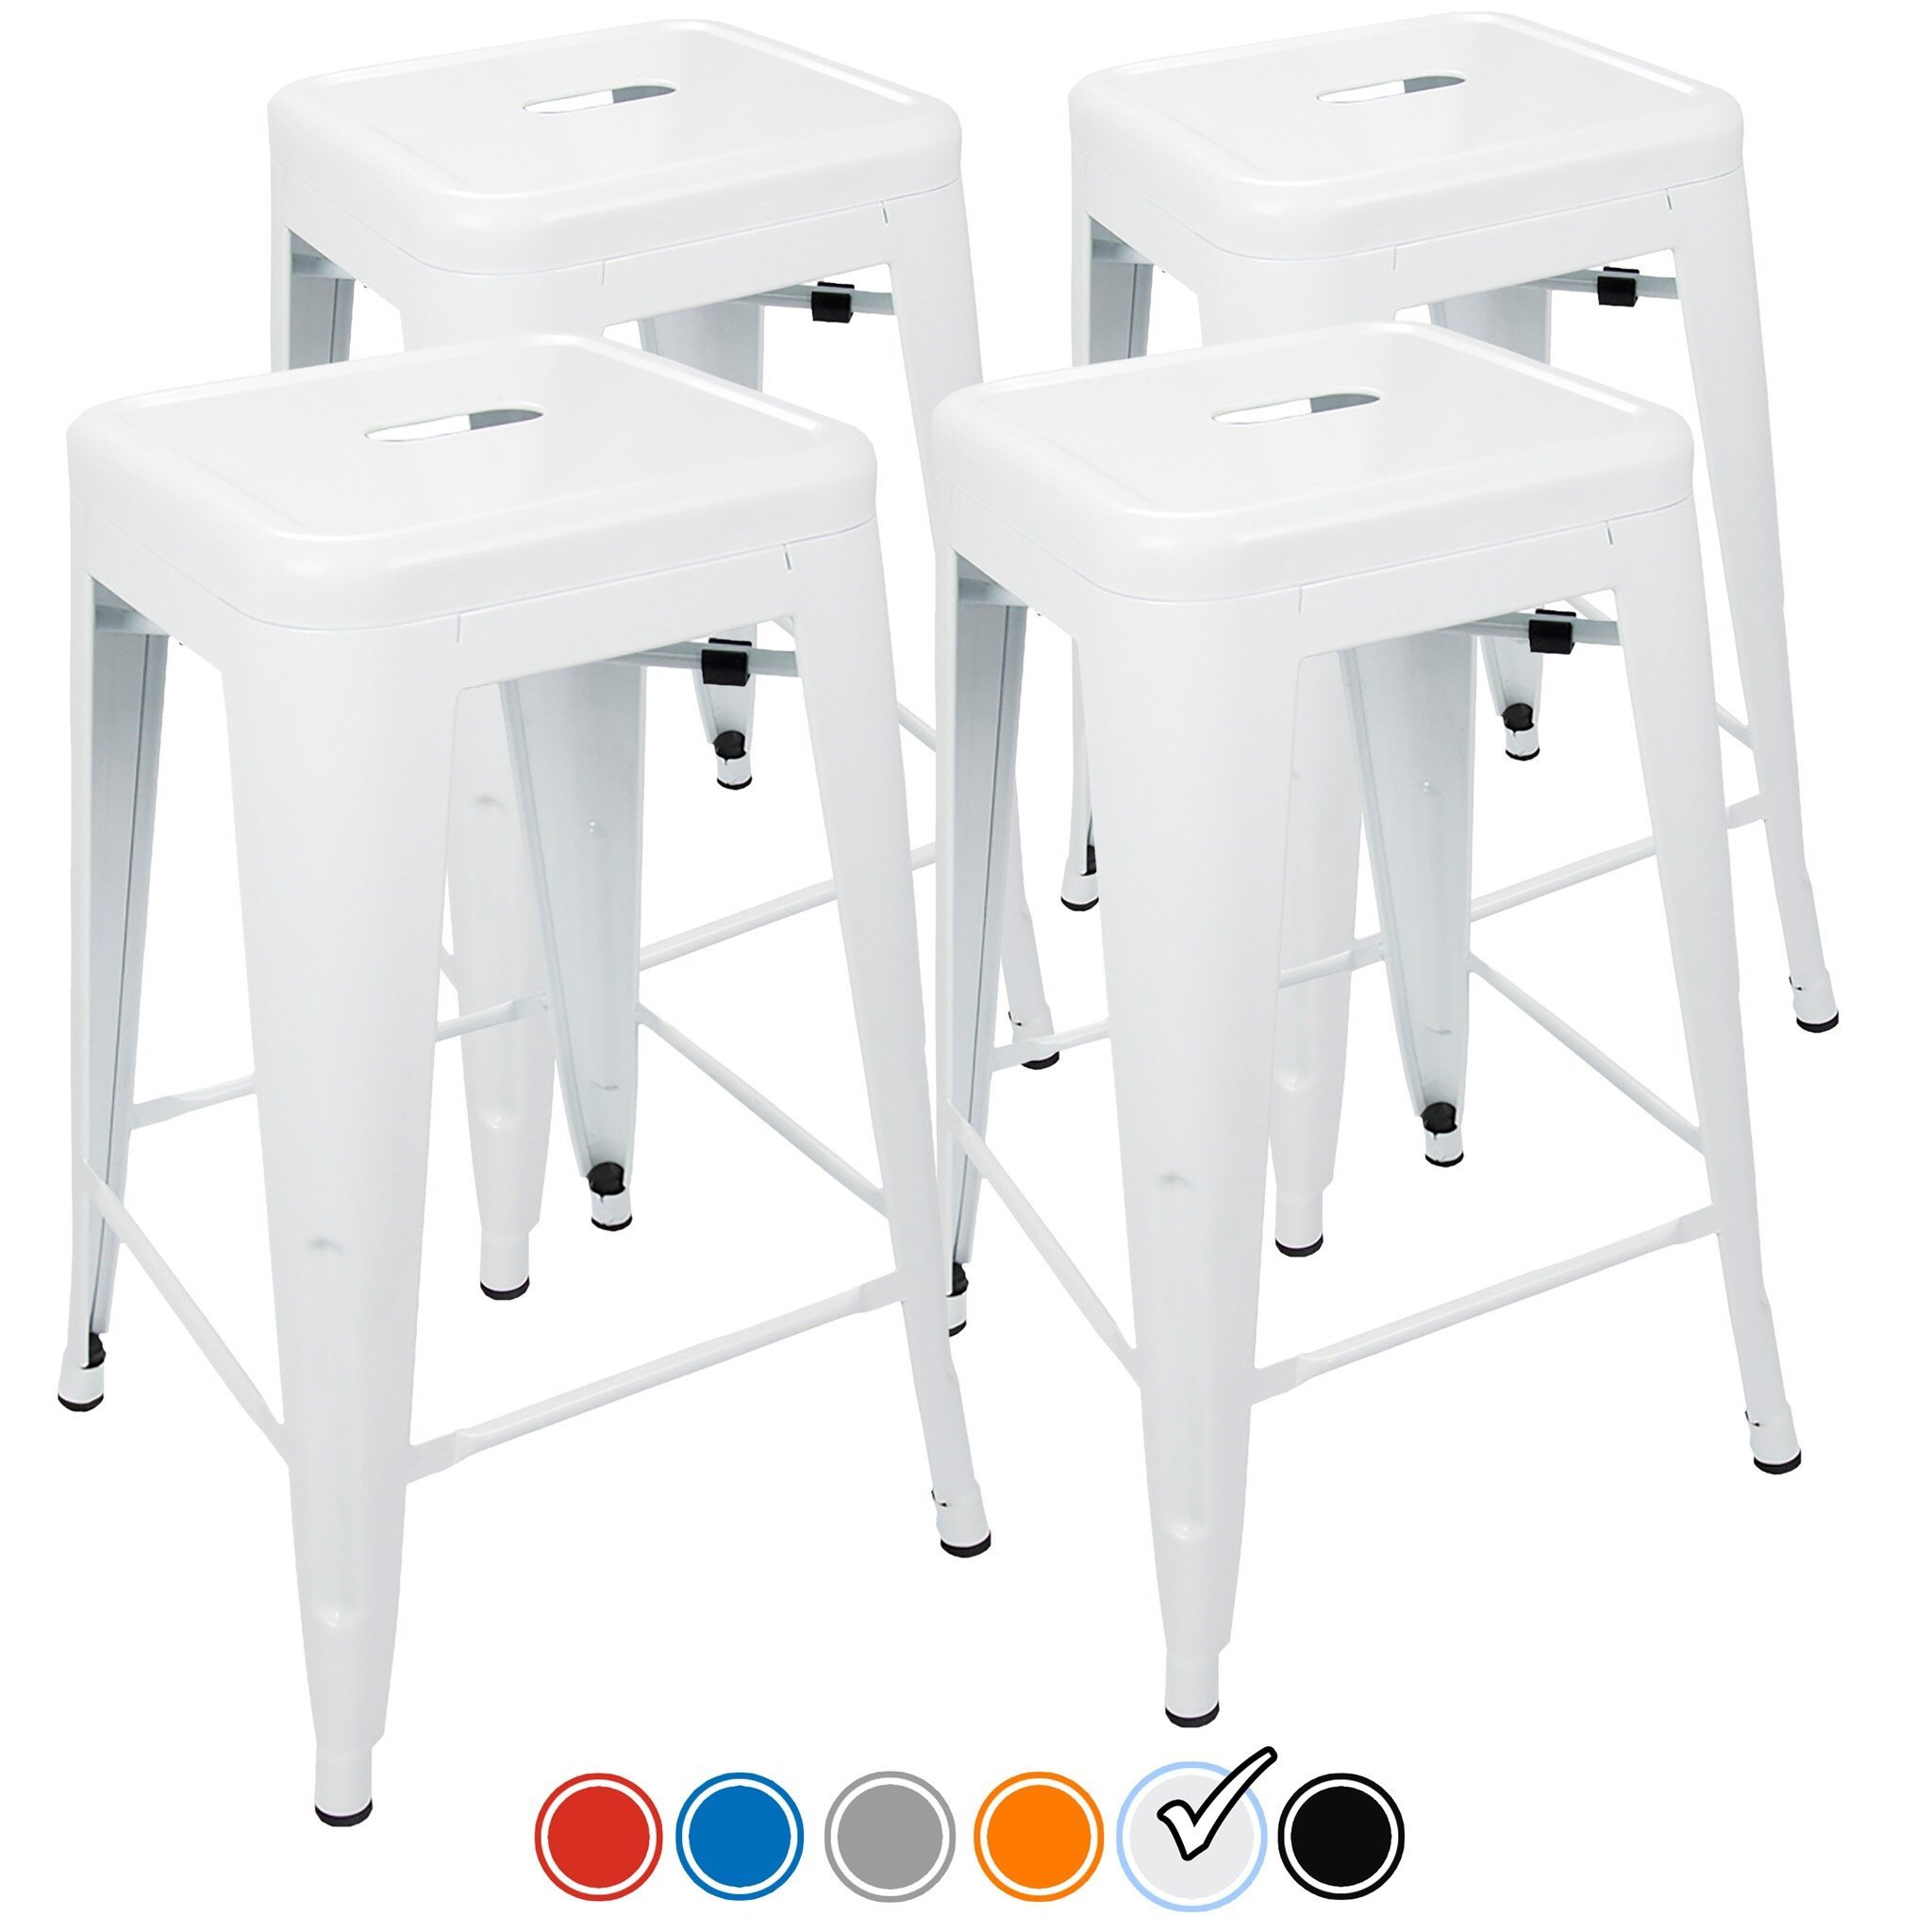 "24"" Counter Height Bar Stools,! (WHITE) by UrbanMod, [Set Of 4] Stackable, Indoor/Outdoor, Kitchen Bar Stools,! 330LB Limit, Metal Bar Stools! Industrial, Galvanized Steel, Counter Stools!"